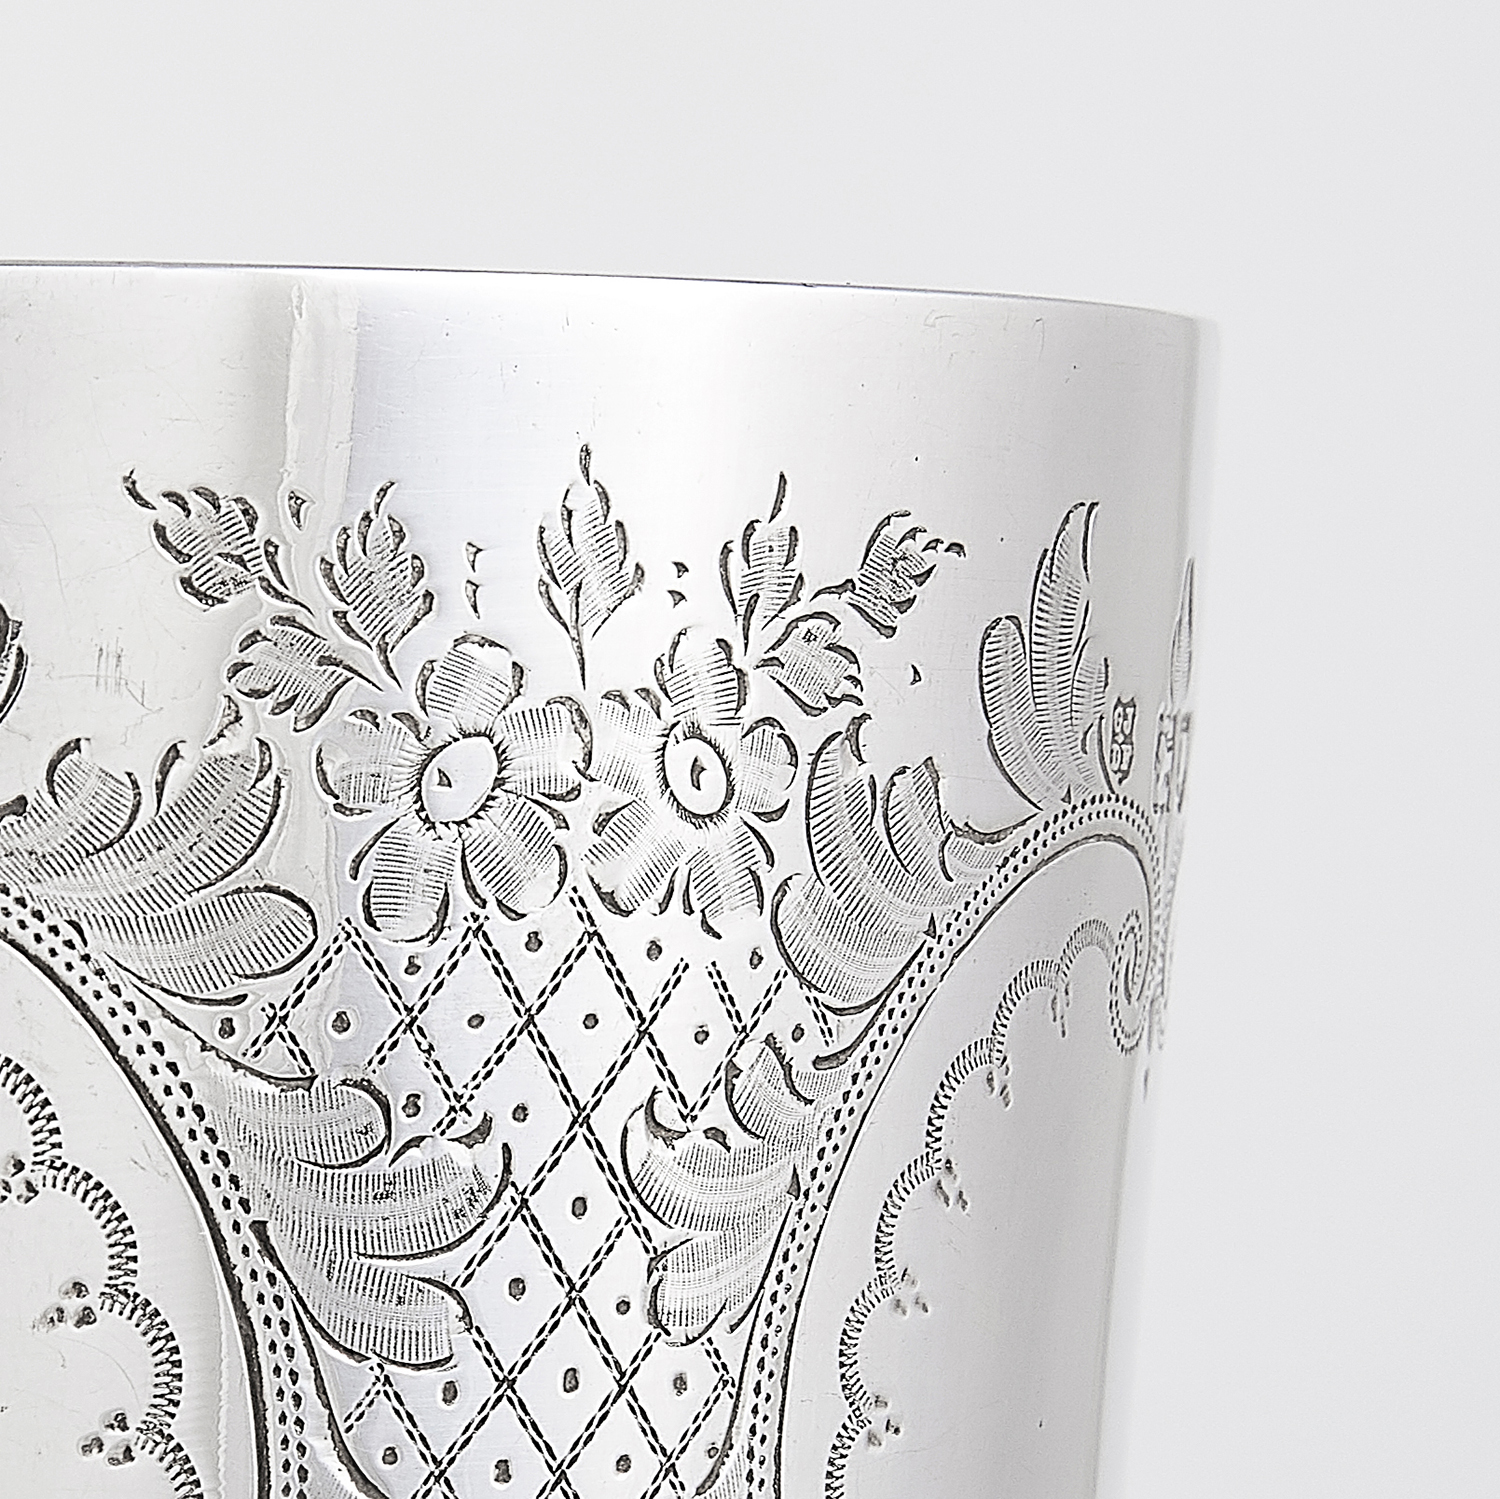 ANTIQUE VICTORIAN STERLING SILVER GOBLET, JACKSON FULLERTON, LONDON 1900 the rounded body with - Image 2 of 3